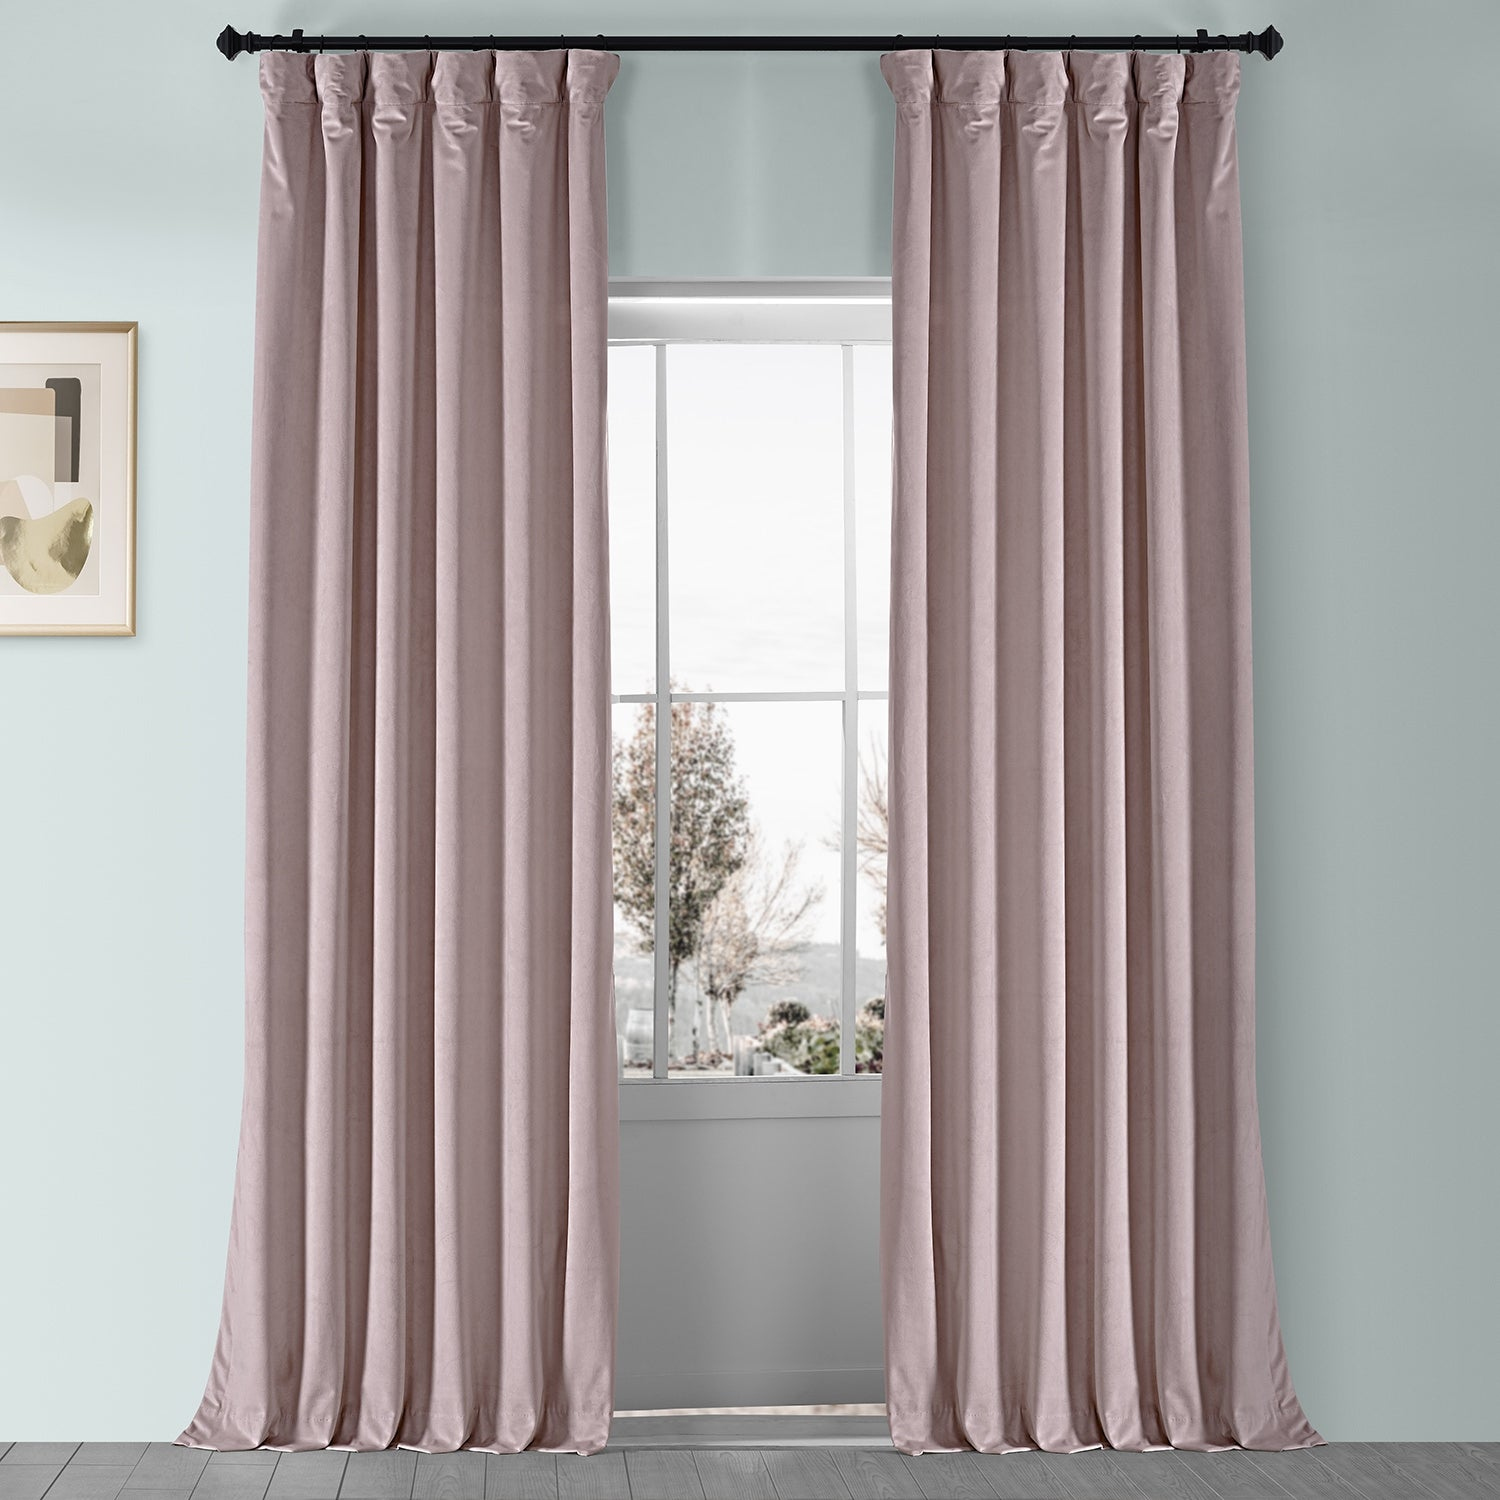 Dusty Pink Curtains for a Toned Down Look